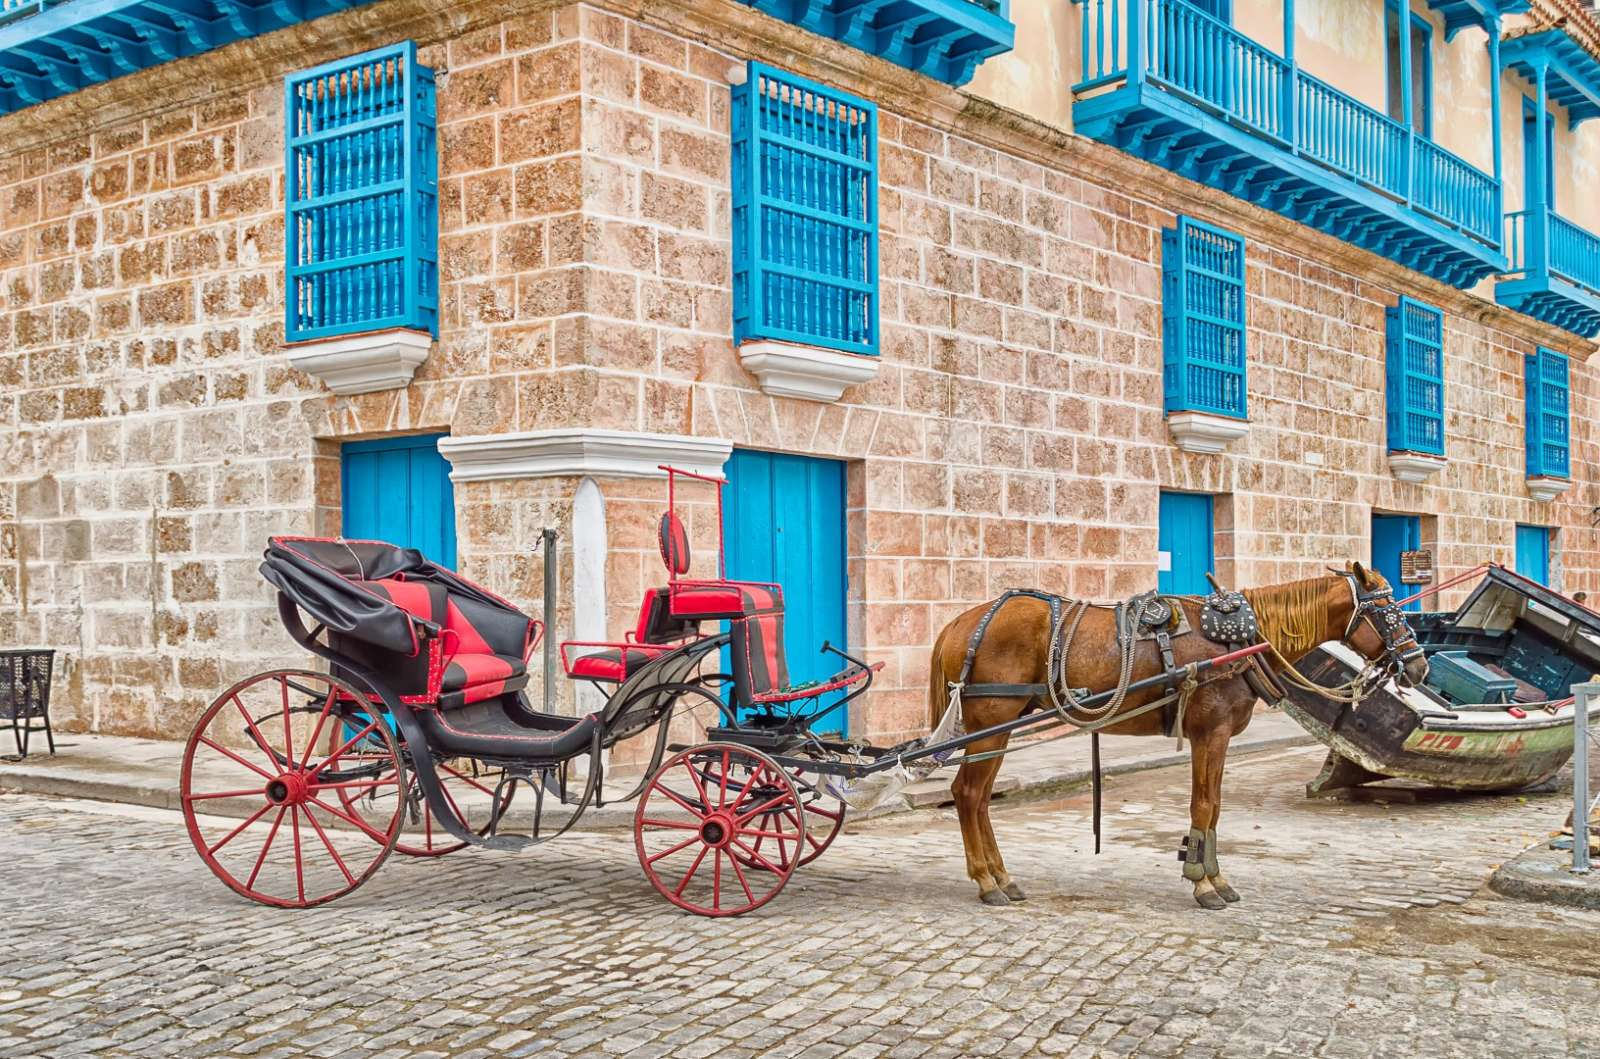 Horse and carriage in Old Havana, Cuba